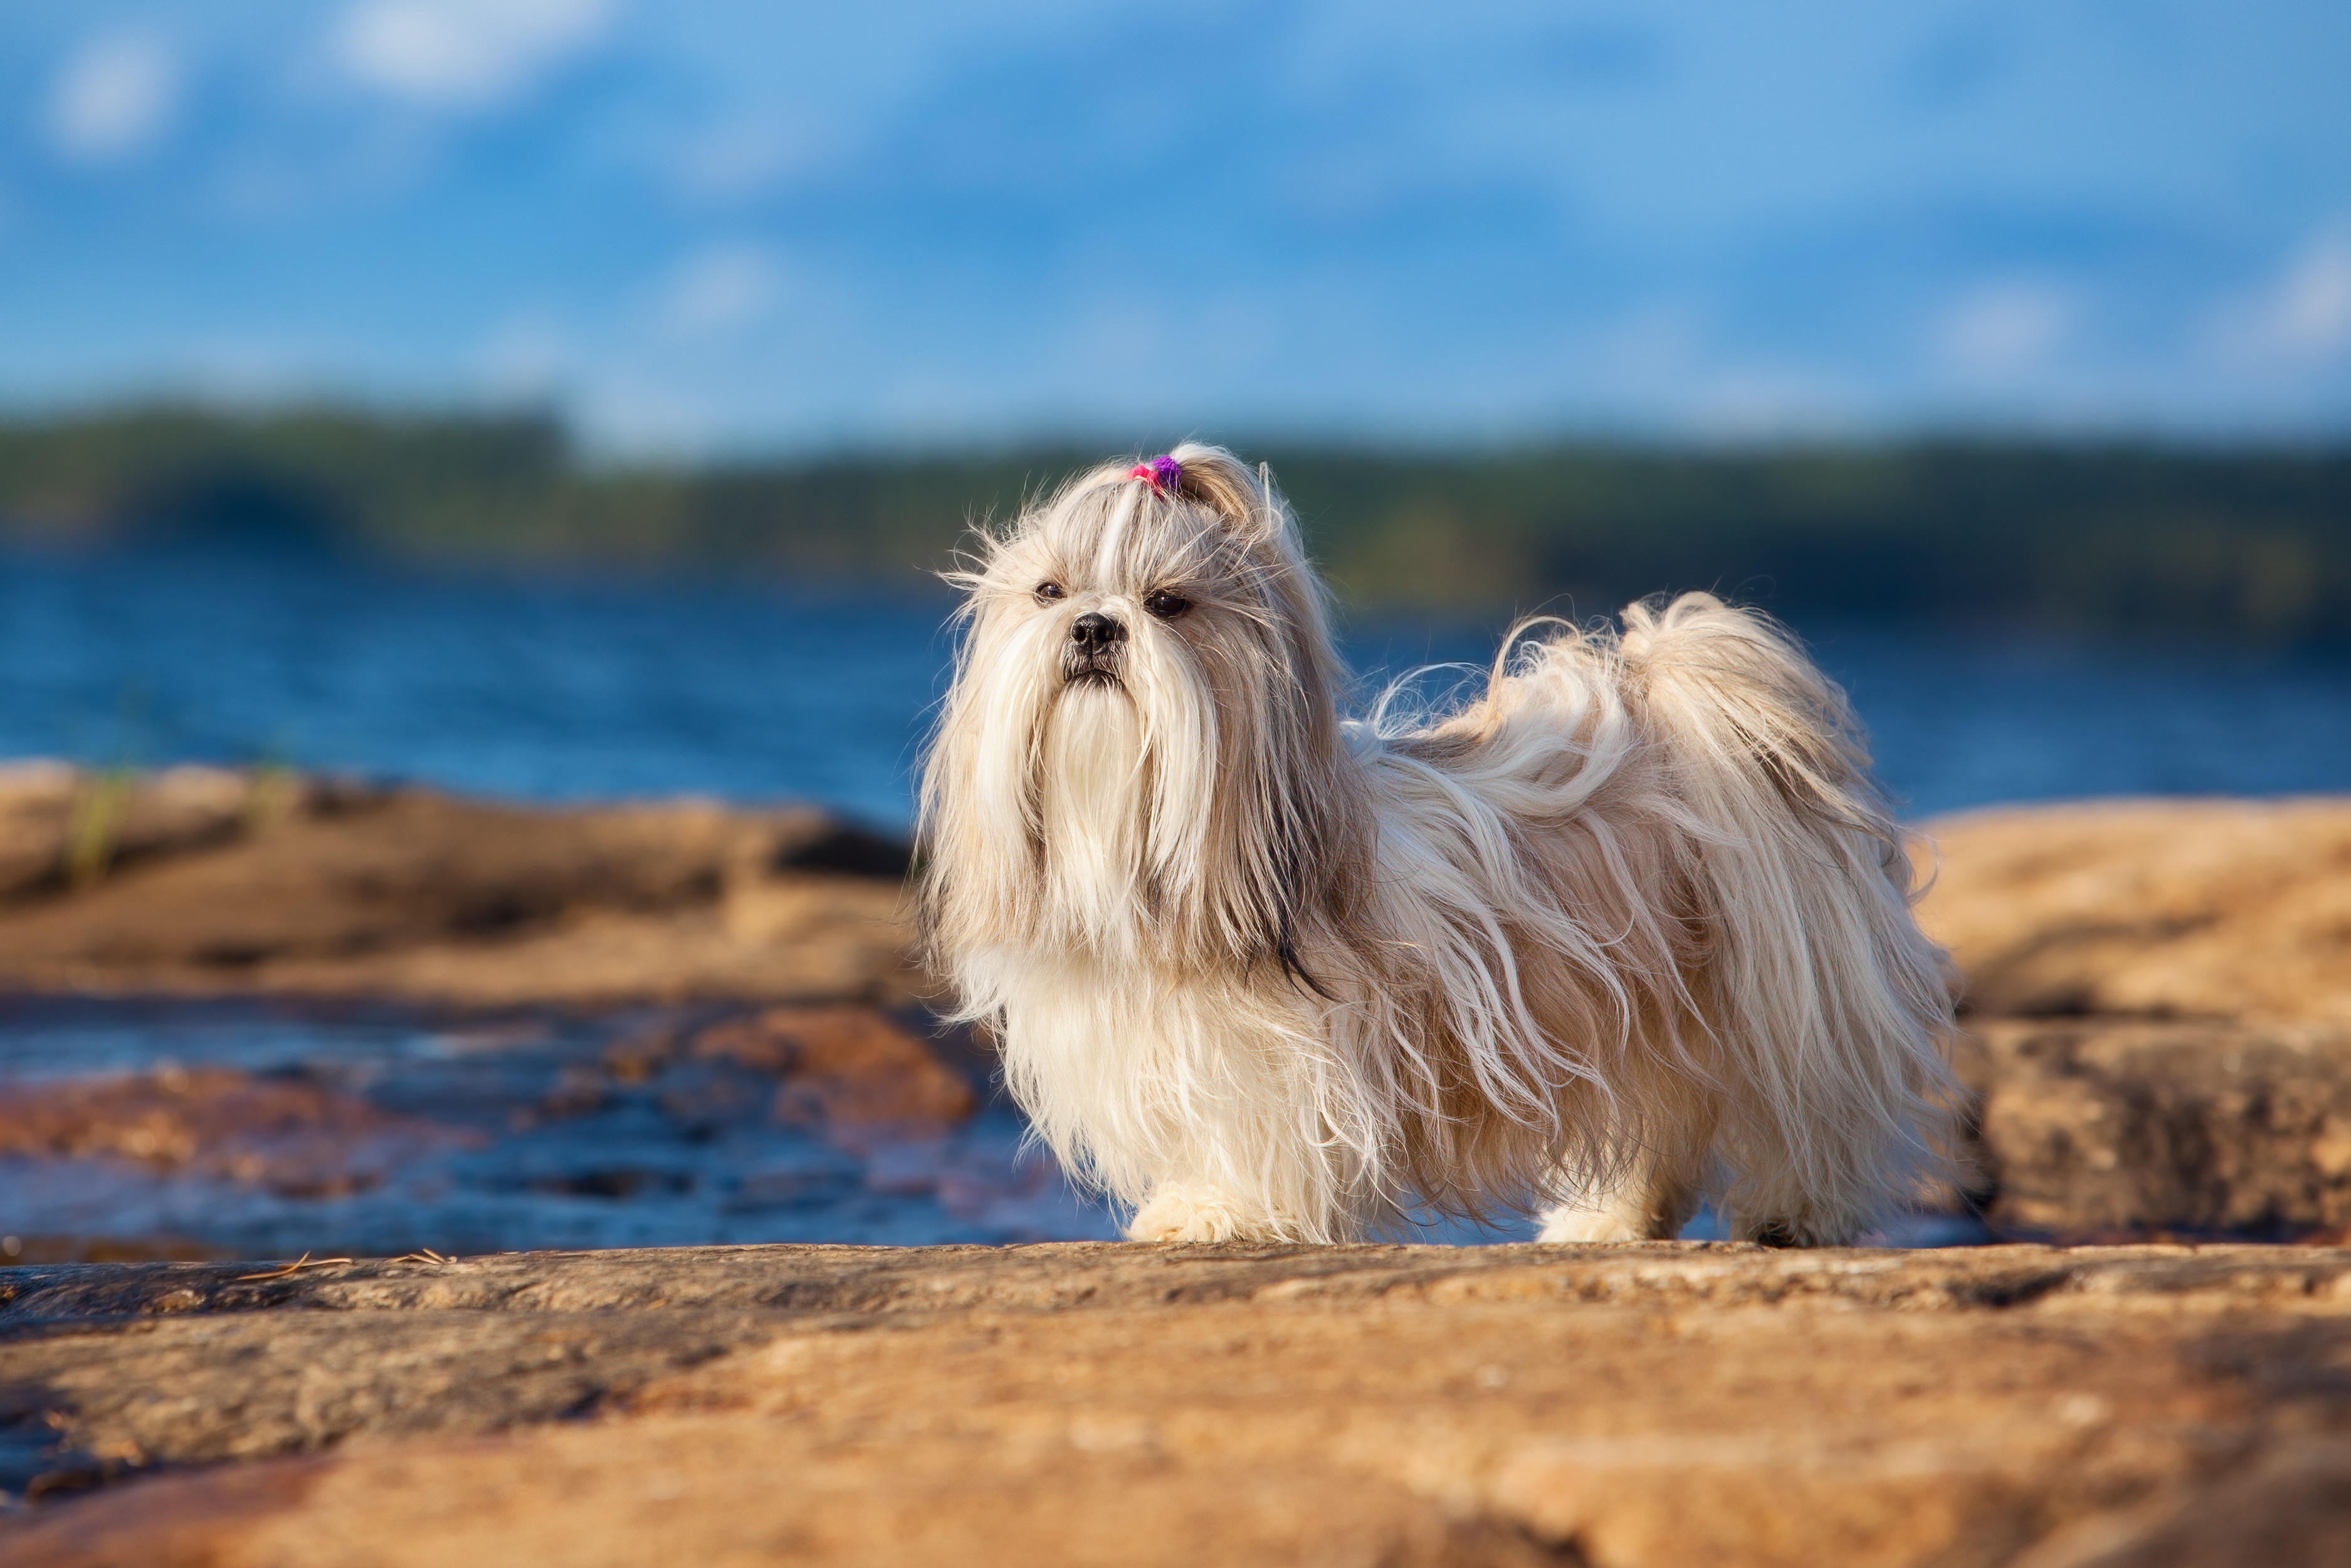 White Shih Tzu dog with red bow standing in profile on rocks by the ocean